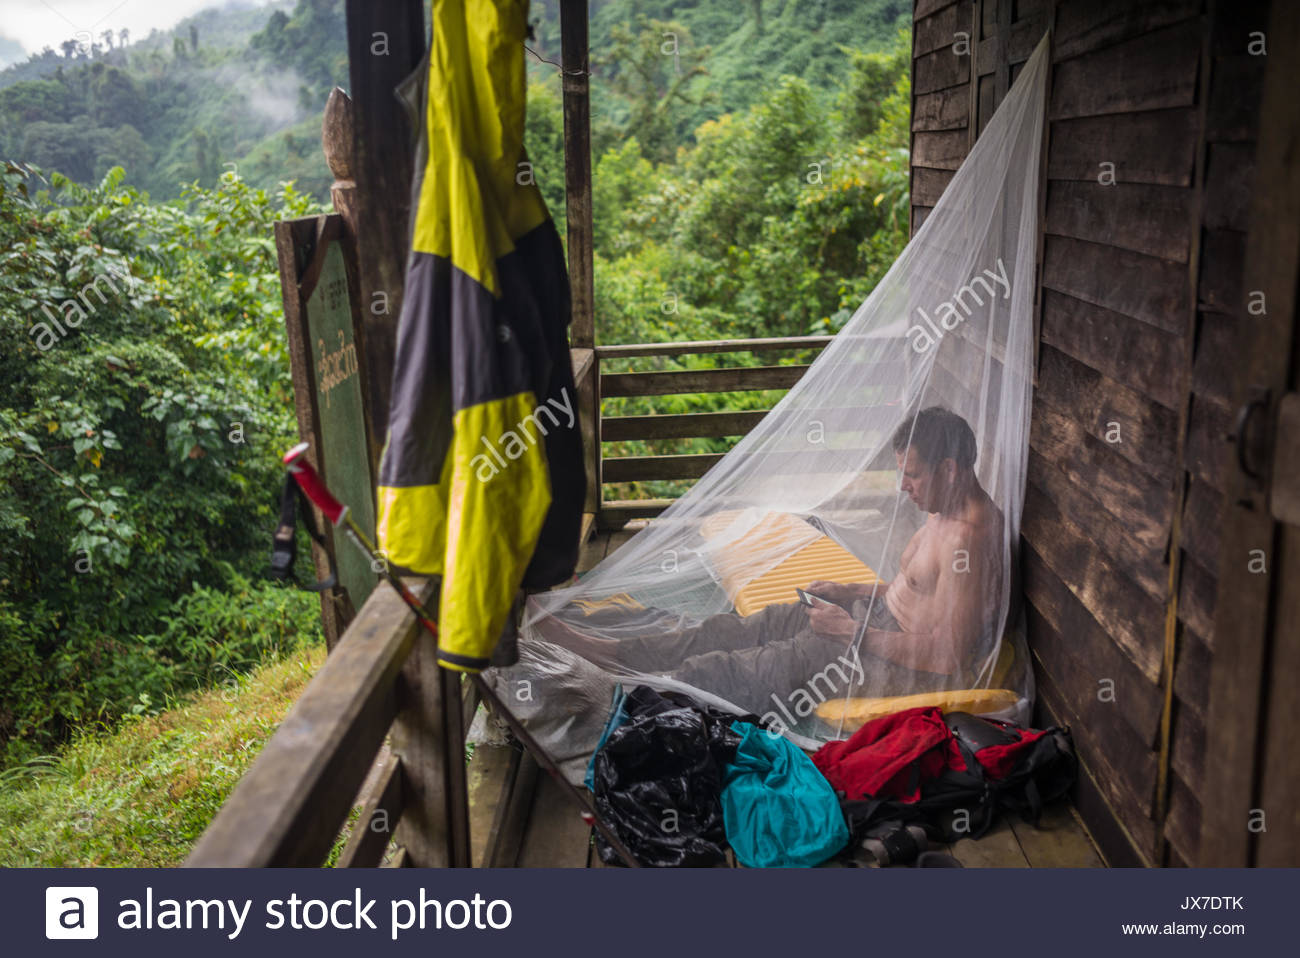 An expedition member sits outside, covered in a mosquito net, while he uses his phone. - Stock Image